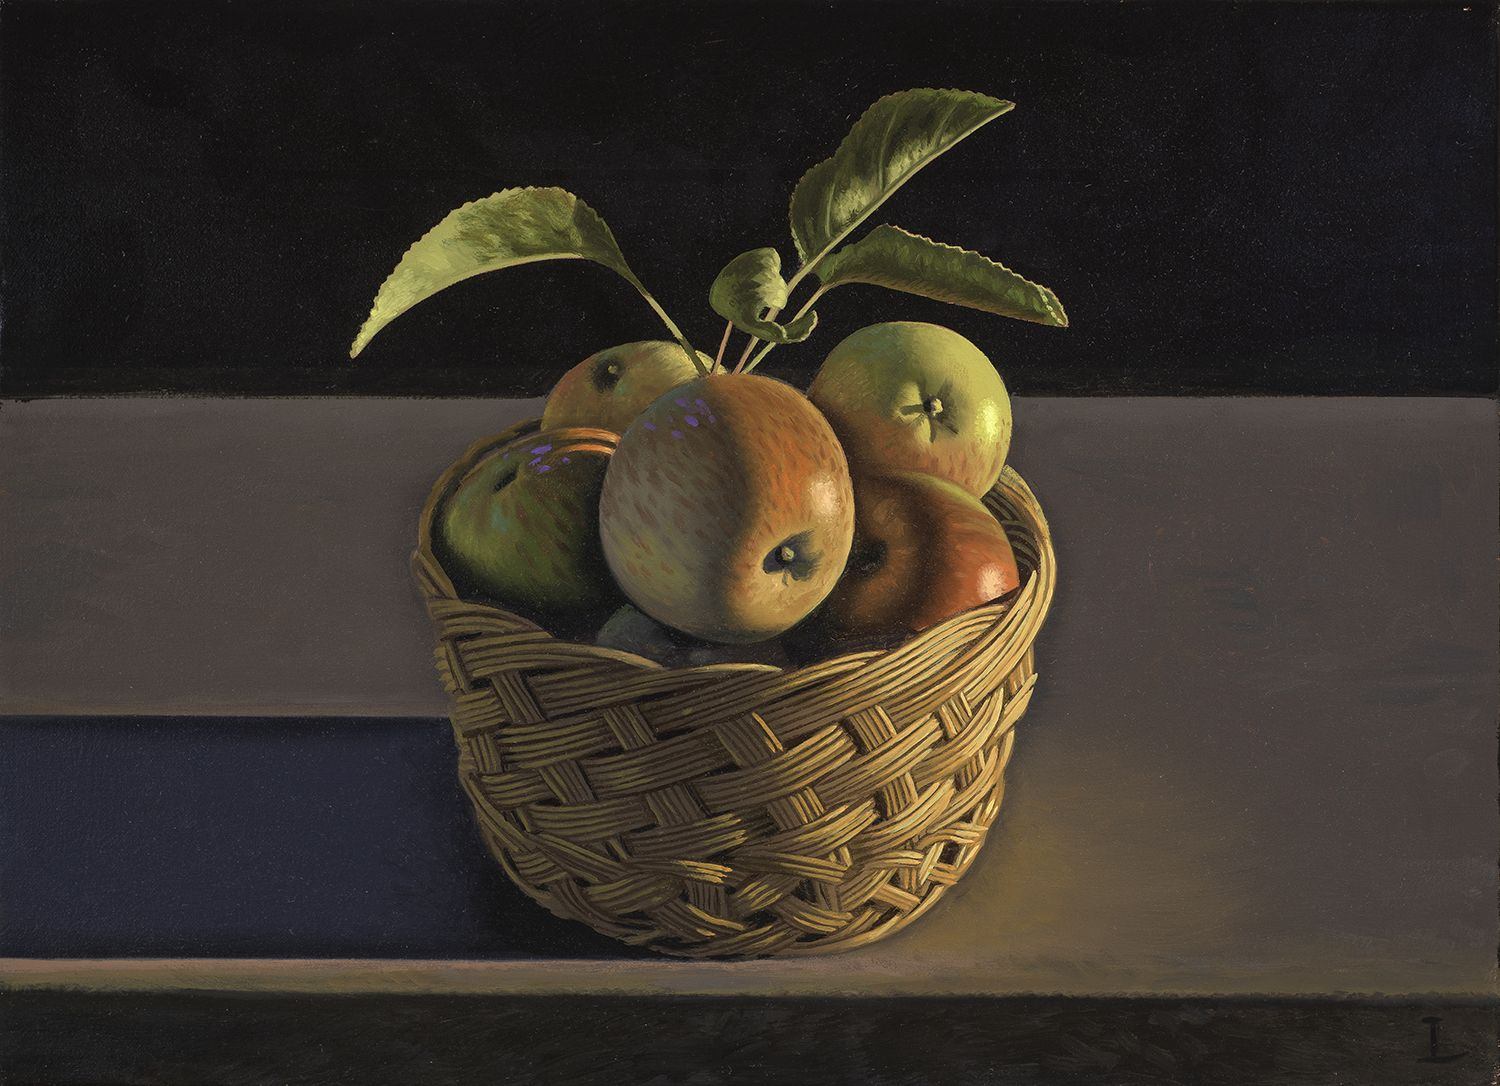 David Ligare (b. 1945), Still Life with Apples and Basket, 2014